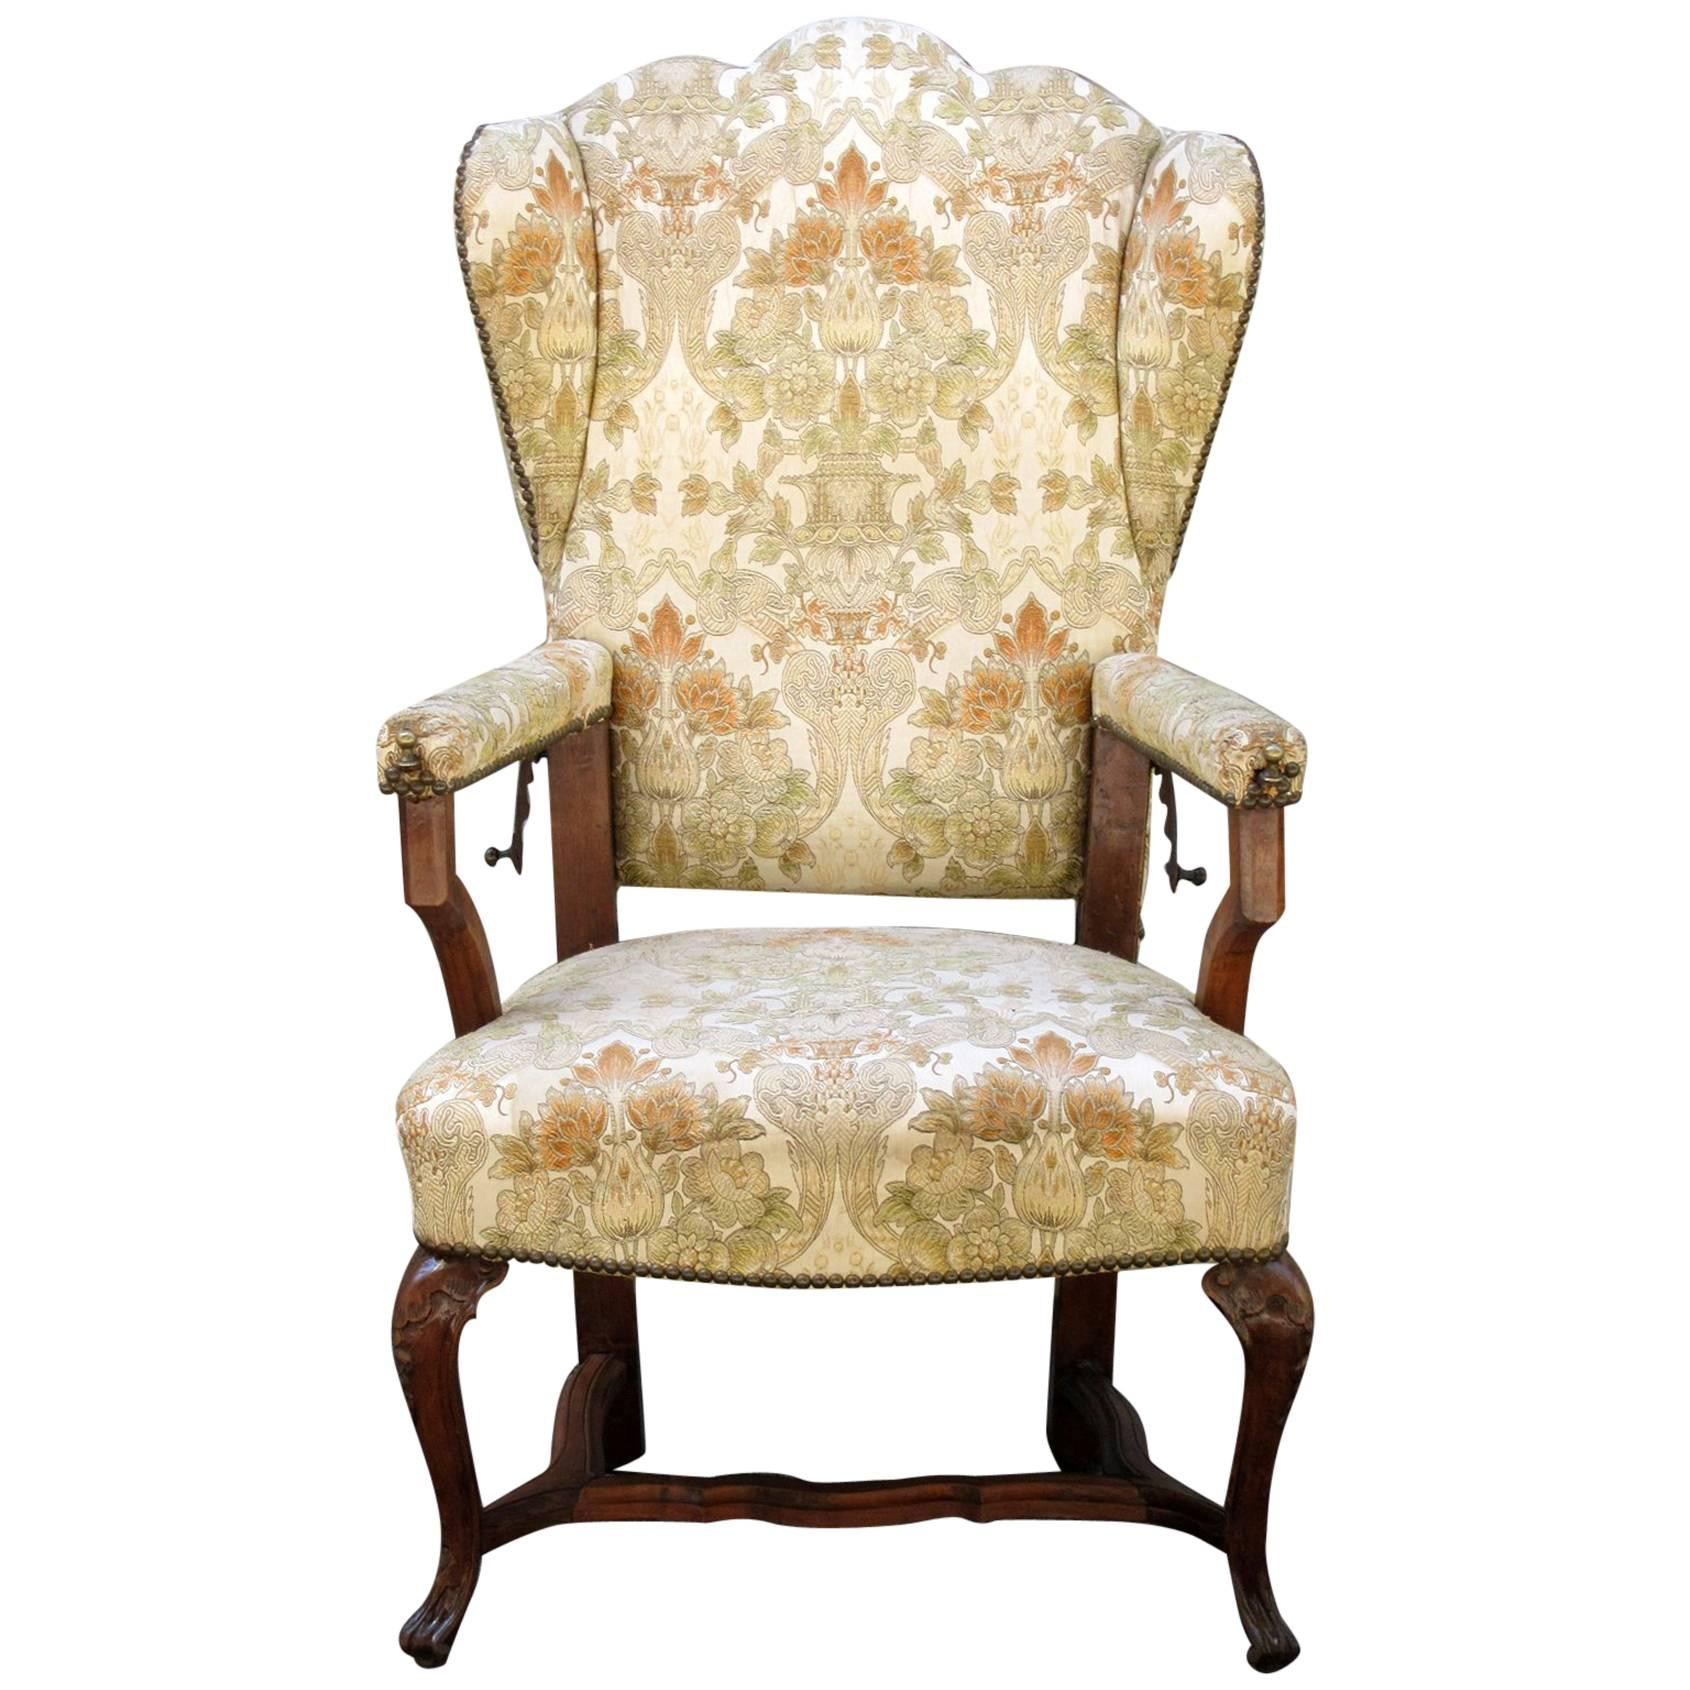 Wingback Recliner Chair 18th Century French Provincial Wingback Upholstered Reclining Chair